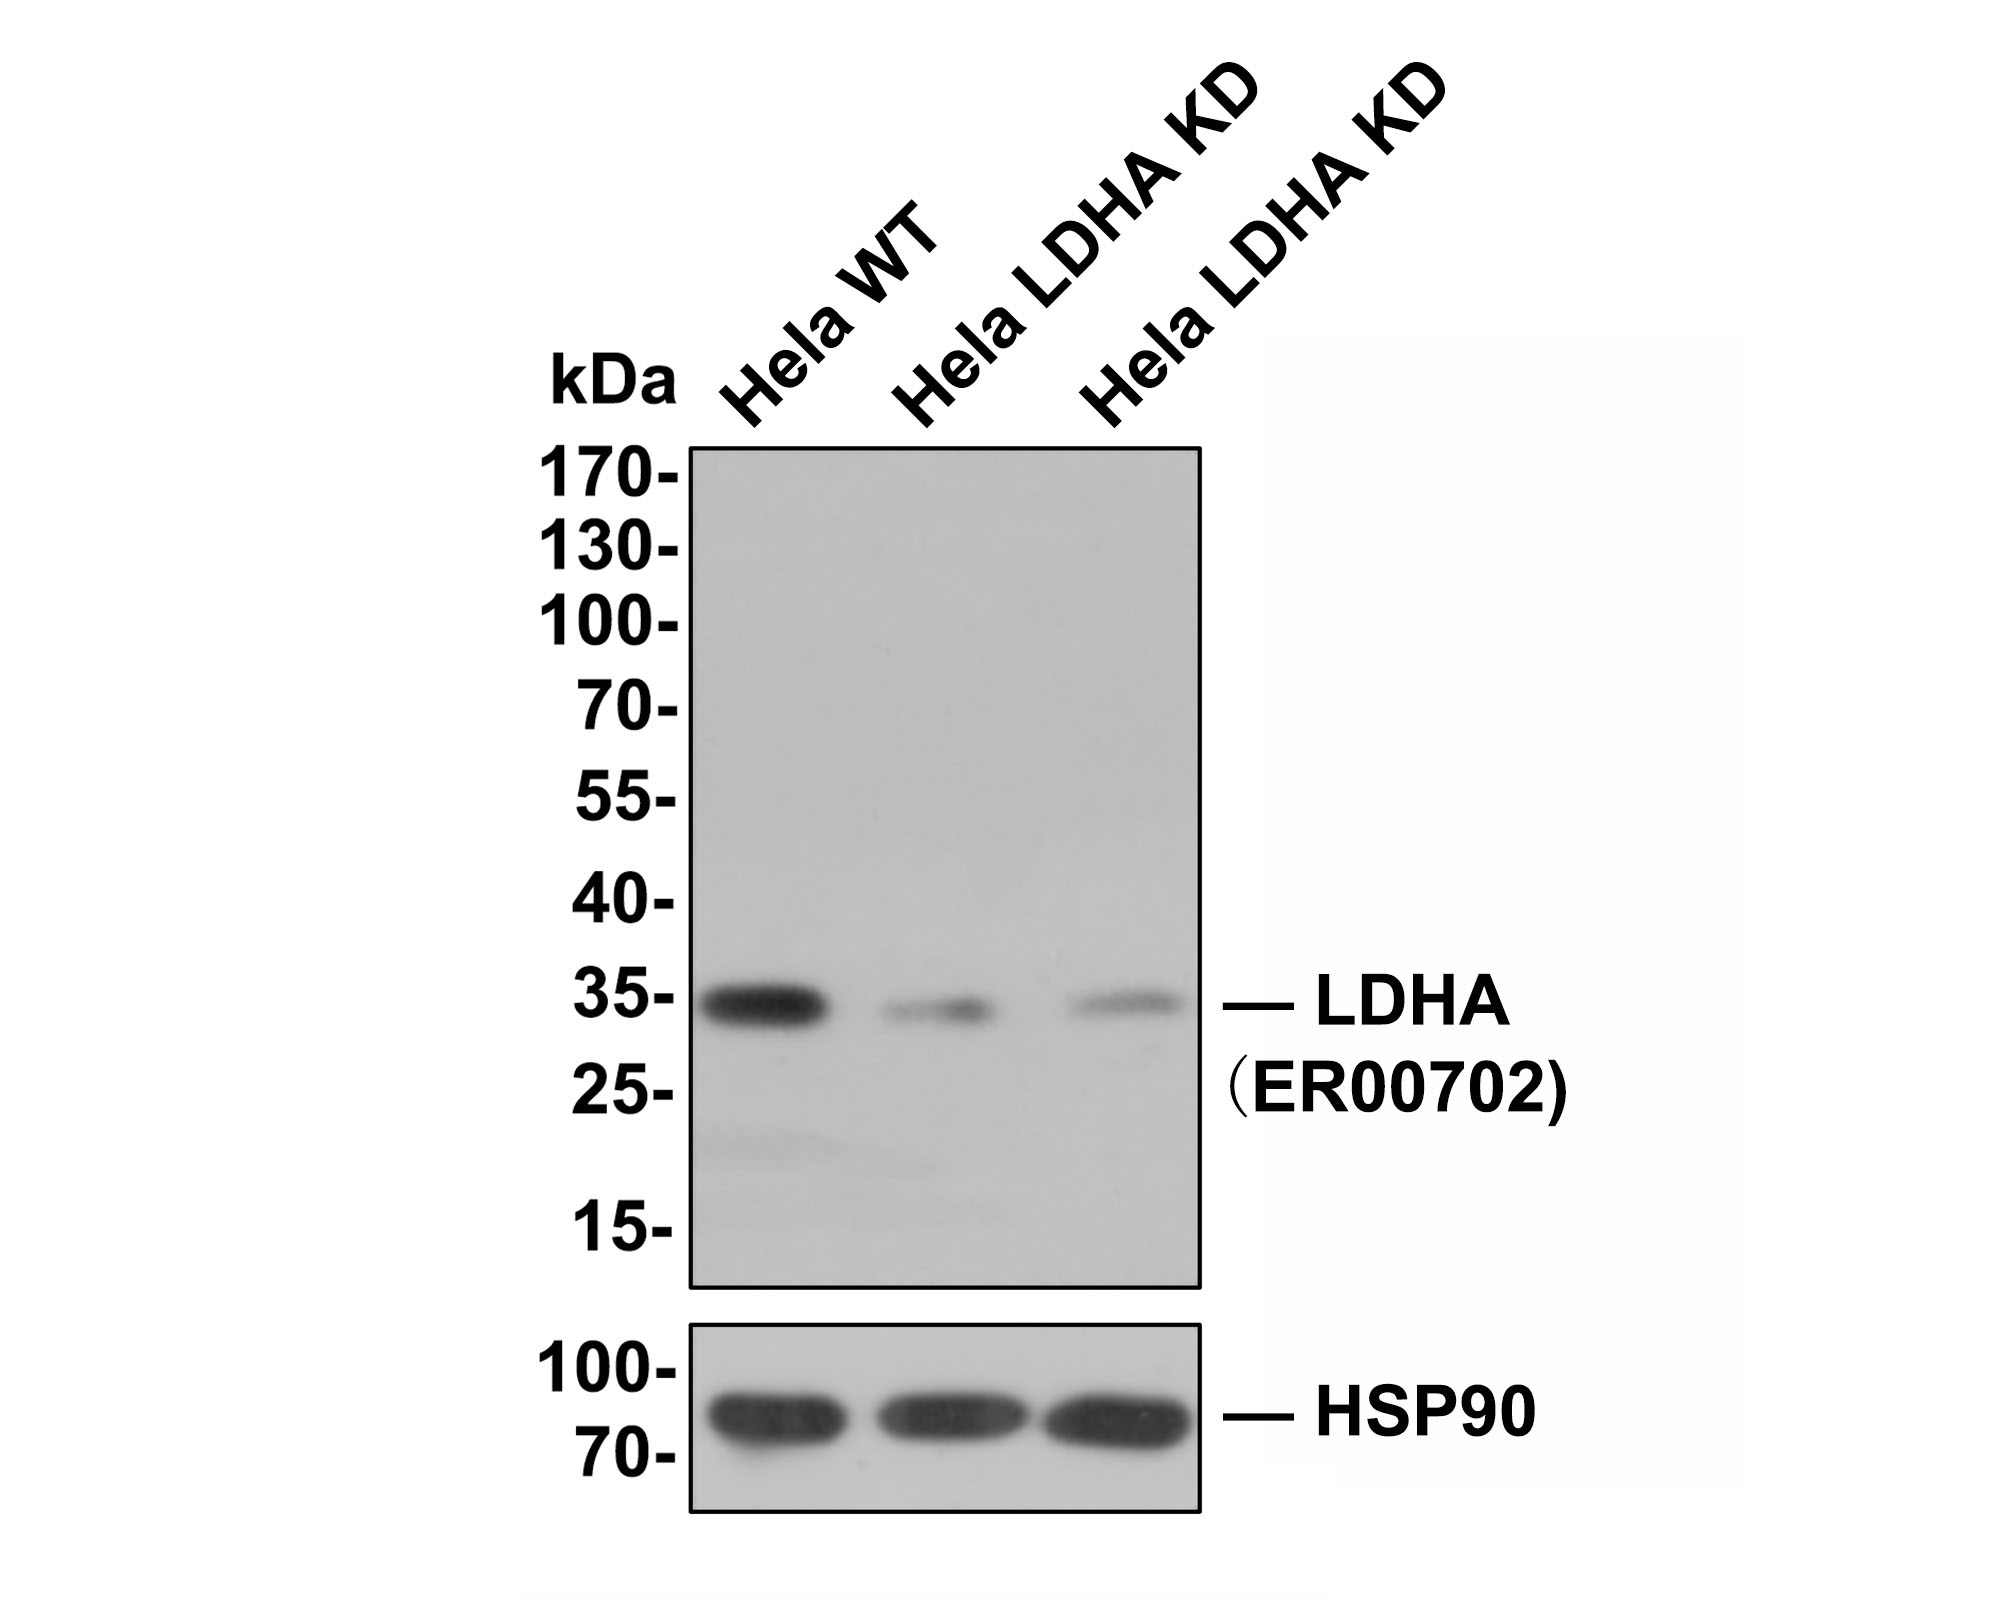 Immunohistochemical analysis of paraffin-embedded rat liver tissue using anti-LDHA antibody. The section was pre-treated using heat mediated antigen retrieval with Tris-EDTA buffer (pH 9.0) for 20 minutes.The tissues were blocked in 1% BSA for 30 minutes at room temperature, washed with ddH2O and PBS, and then probed with the primary antibody (ER00702, 1/50) for 30 minutes at room temperature. The detection was performed using an HRP conjugated compact polymer system. DAB was used as the chromogen. Tissues were counterstained with hematoxylin and mounted with DPX.